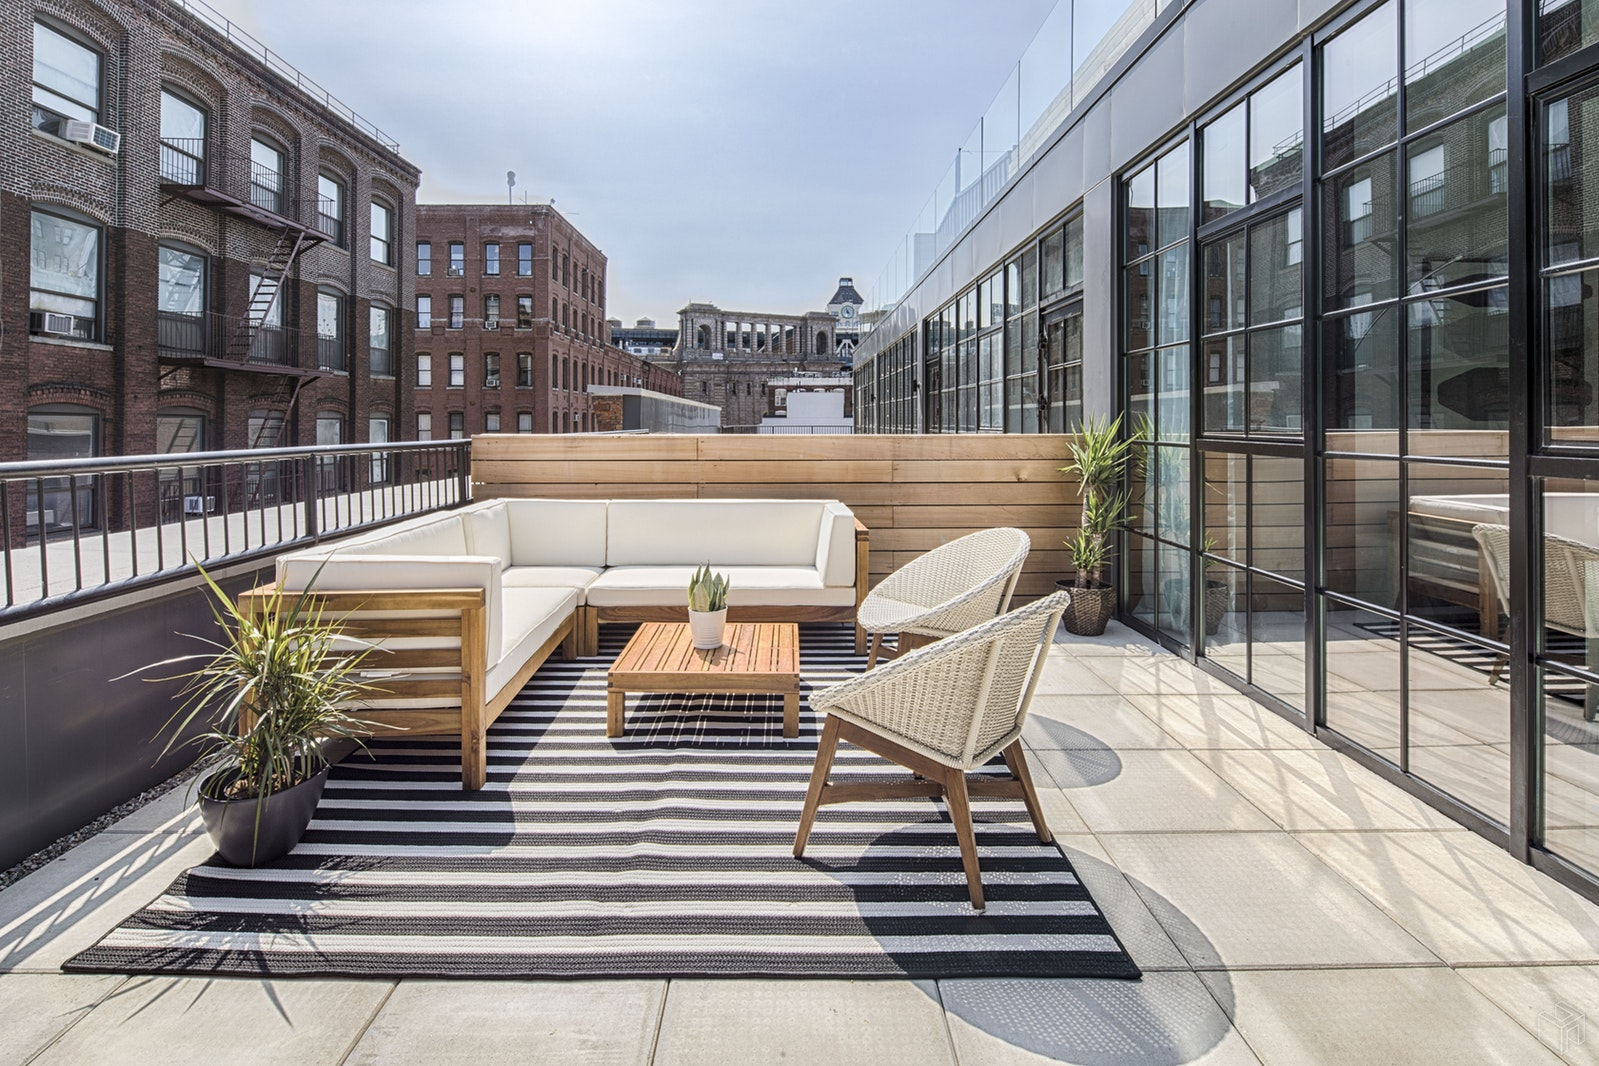 51 Jay Street PHg, Dumbo, Brooklyn, NY, 11201, $3,350,000, Property For Sale, ID# 11971074, Halstead